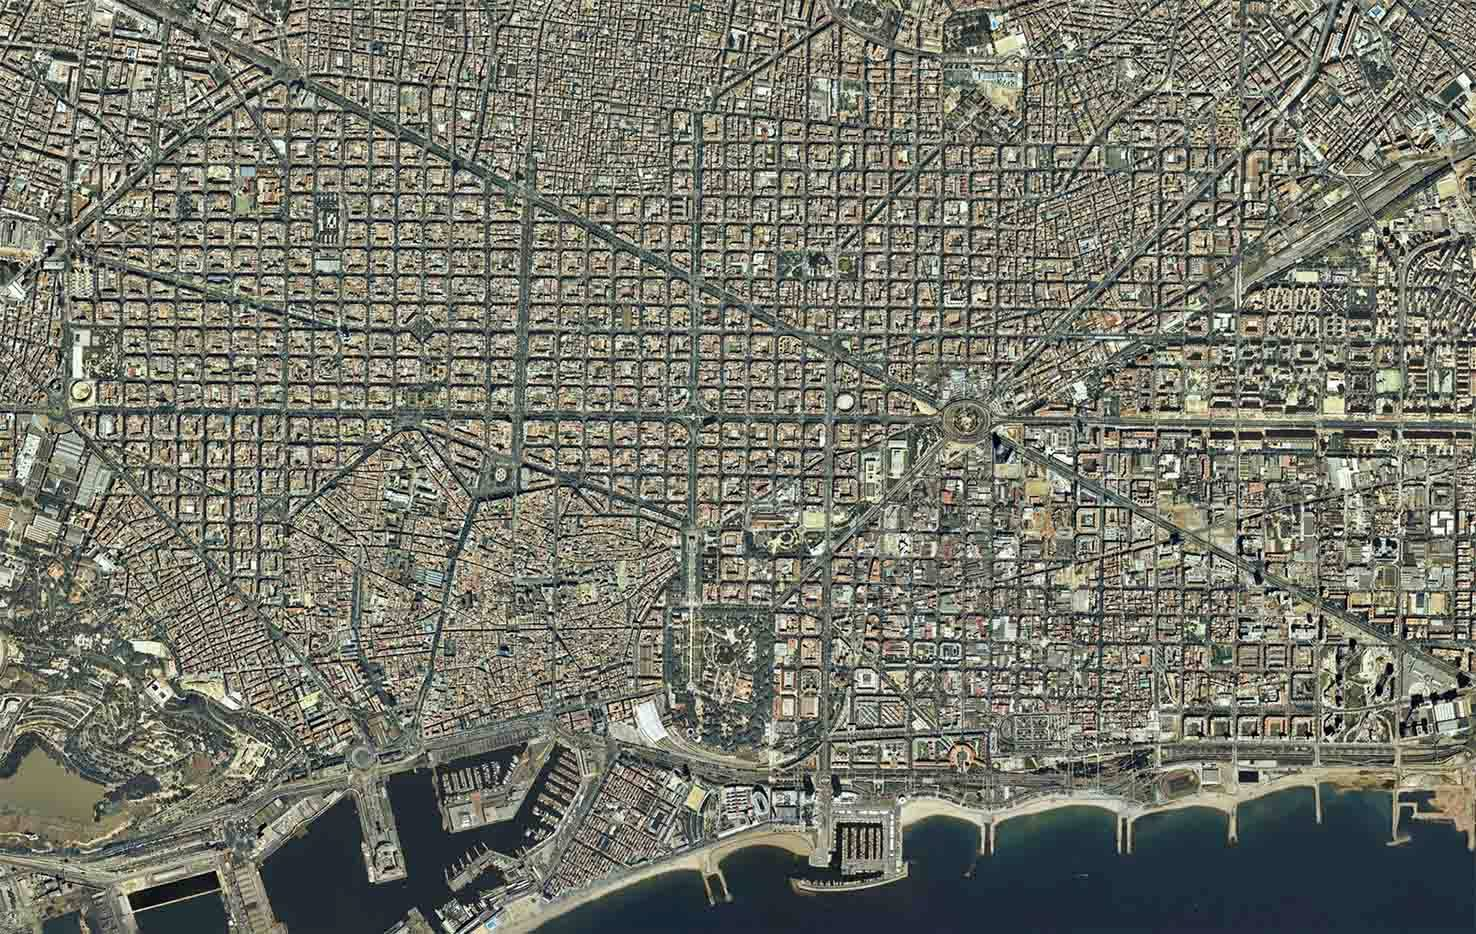 Satellite map of downtown Barcelona 2004